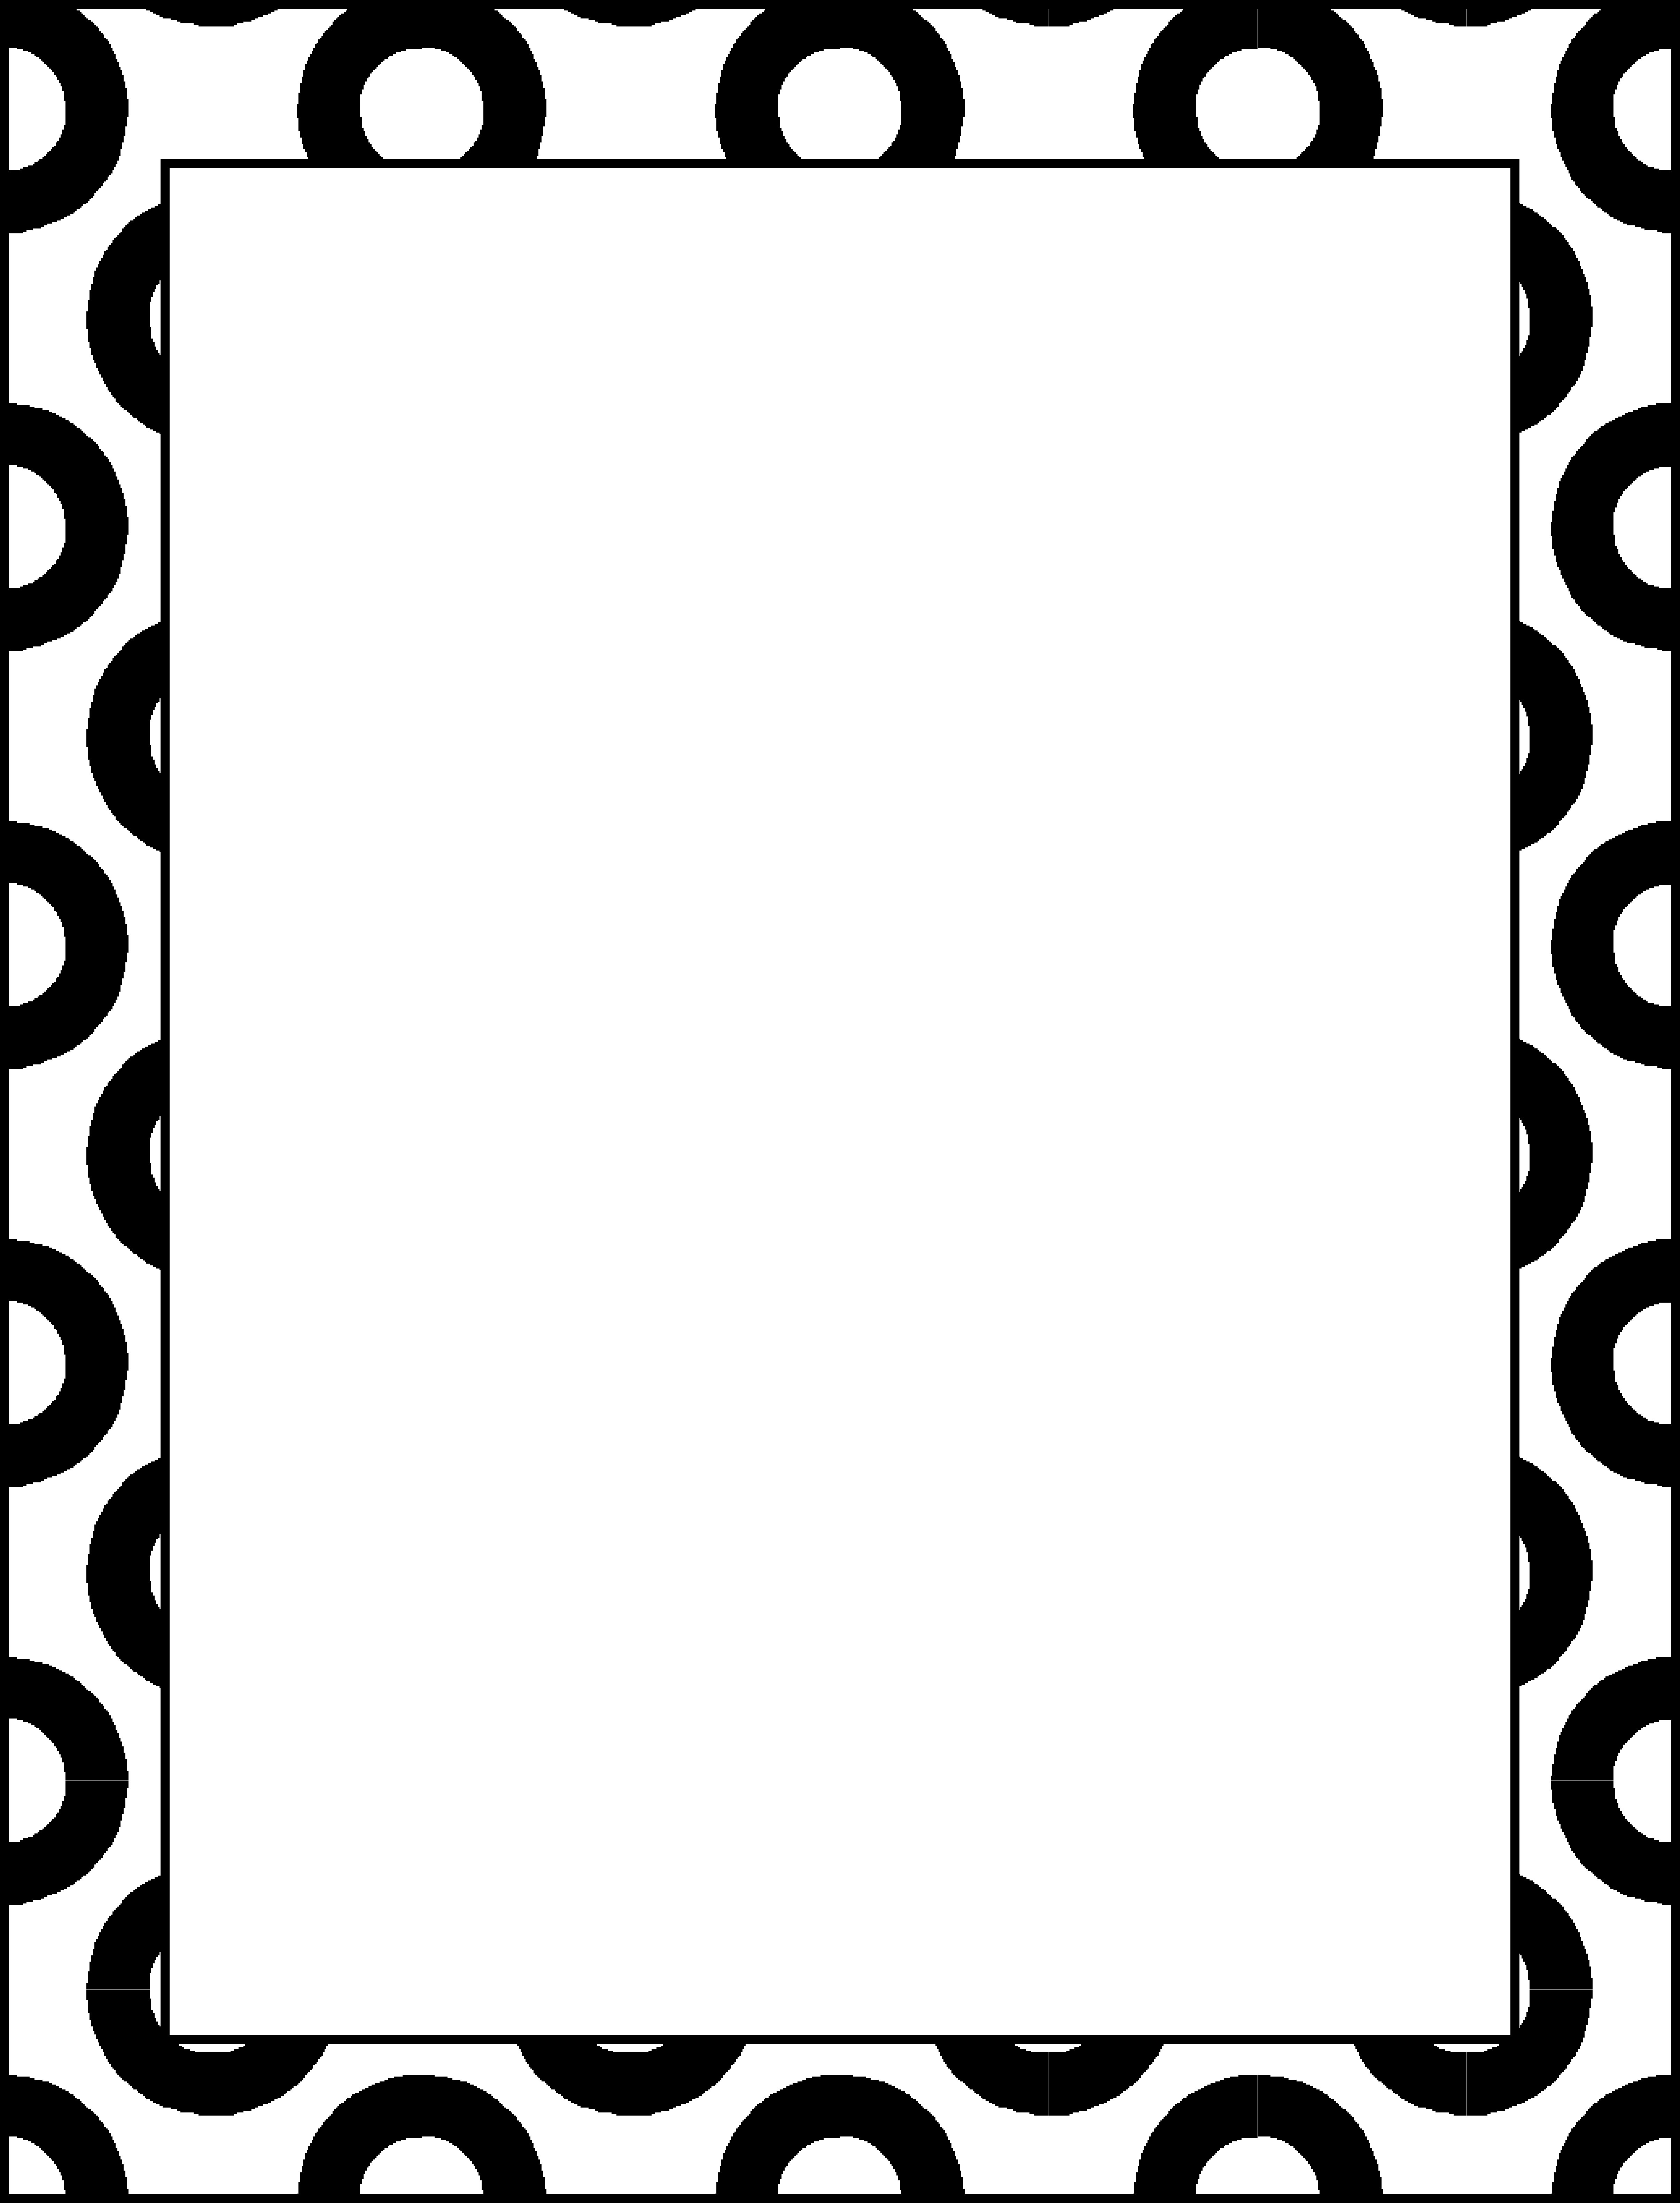 Vegetables Clipart Black And White Border | Clipart Panda ... Very Simple Border Designs To Draw